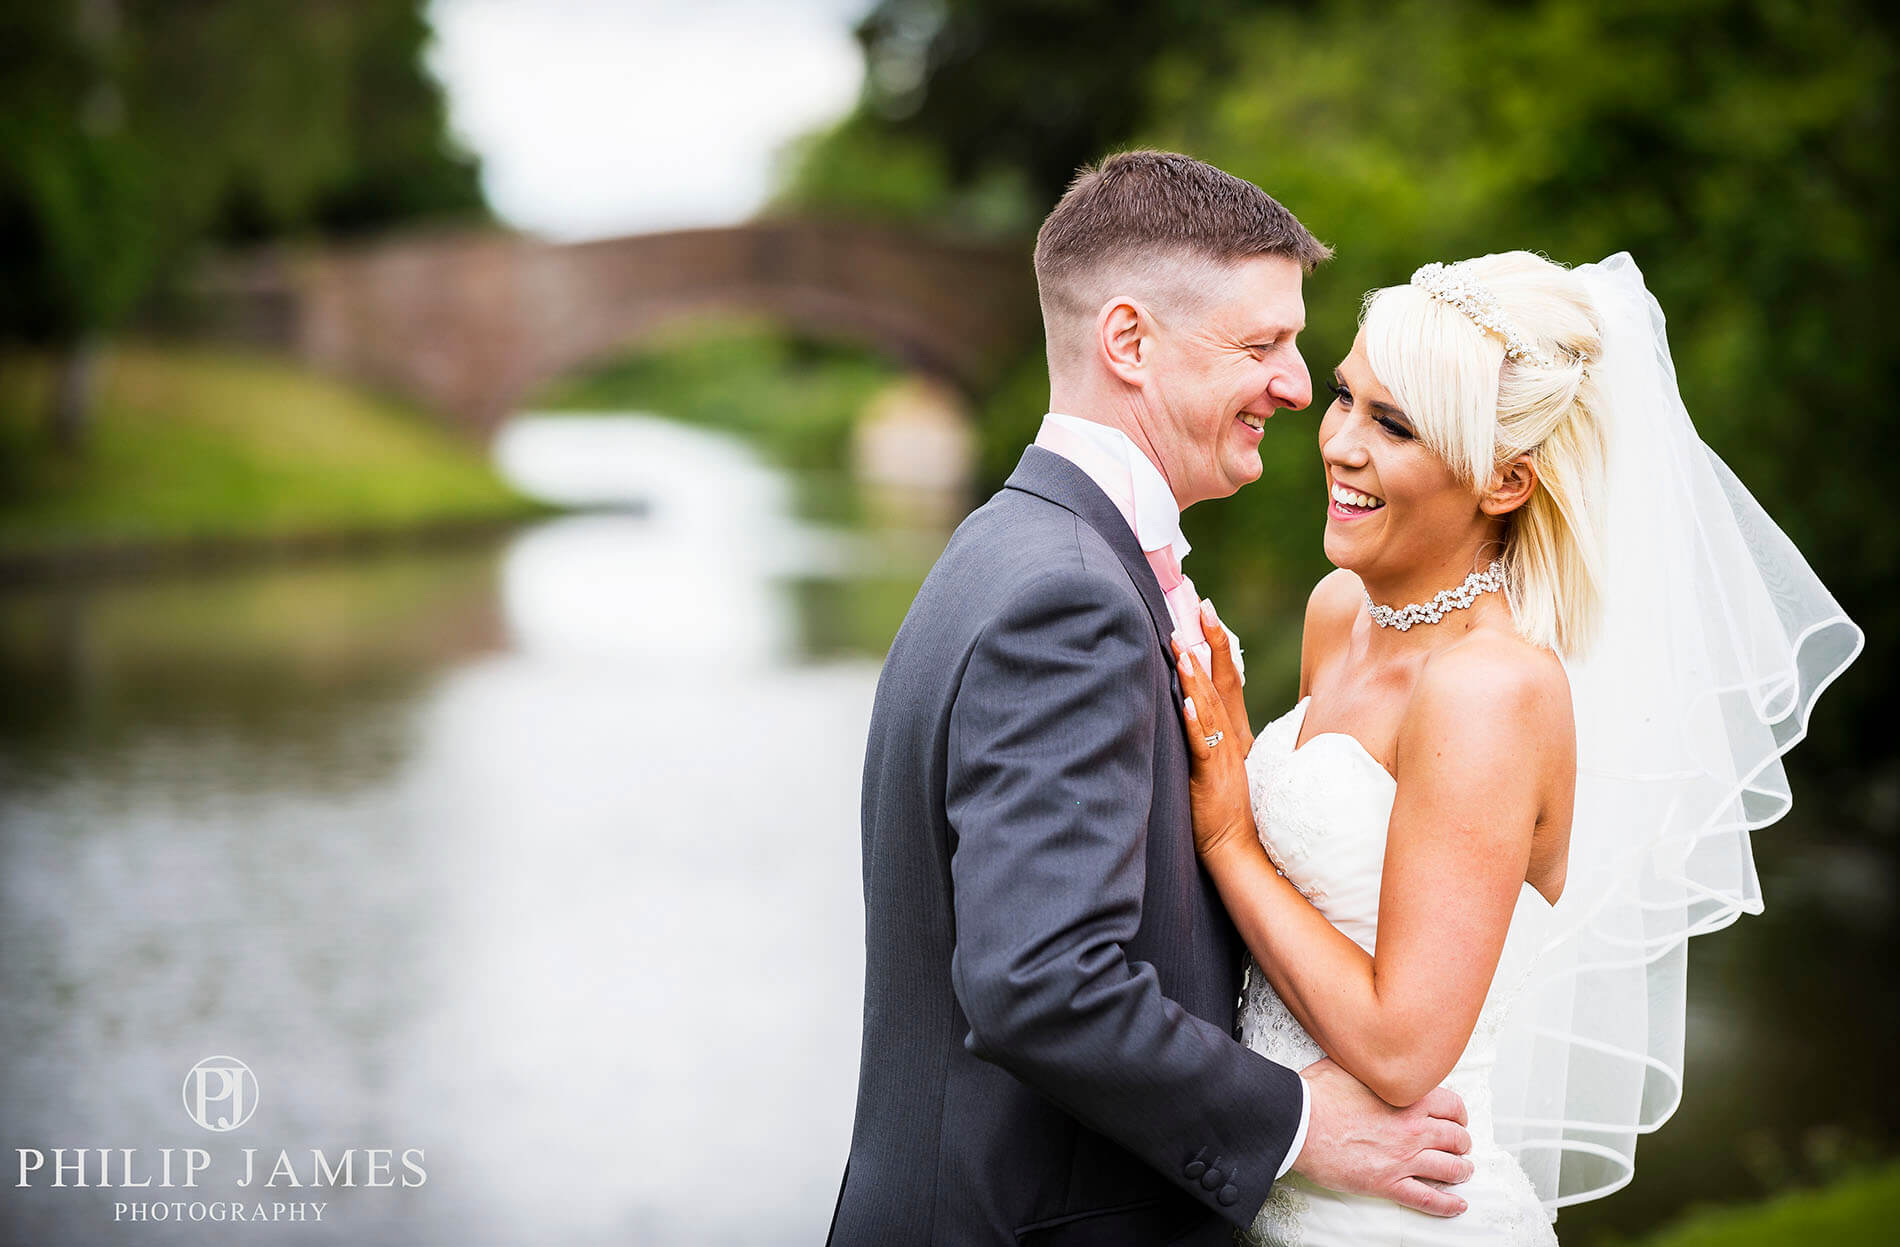 Birmingham Wedding Photographer - Philip James Photography based in Solihull (17 of 68)